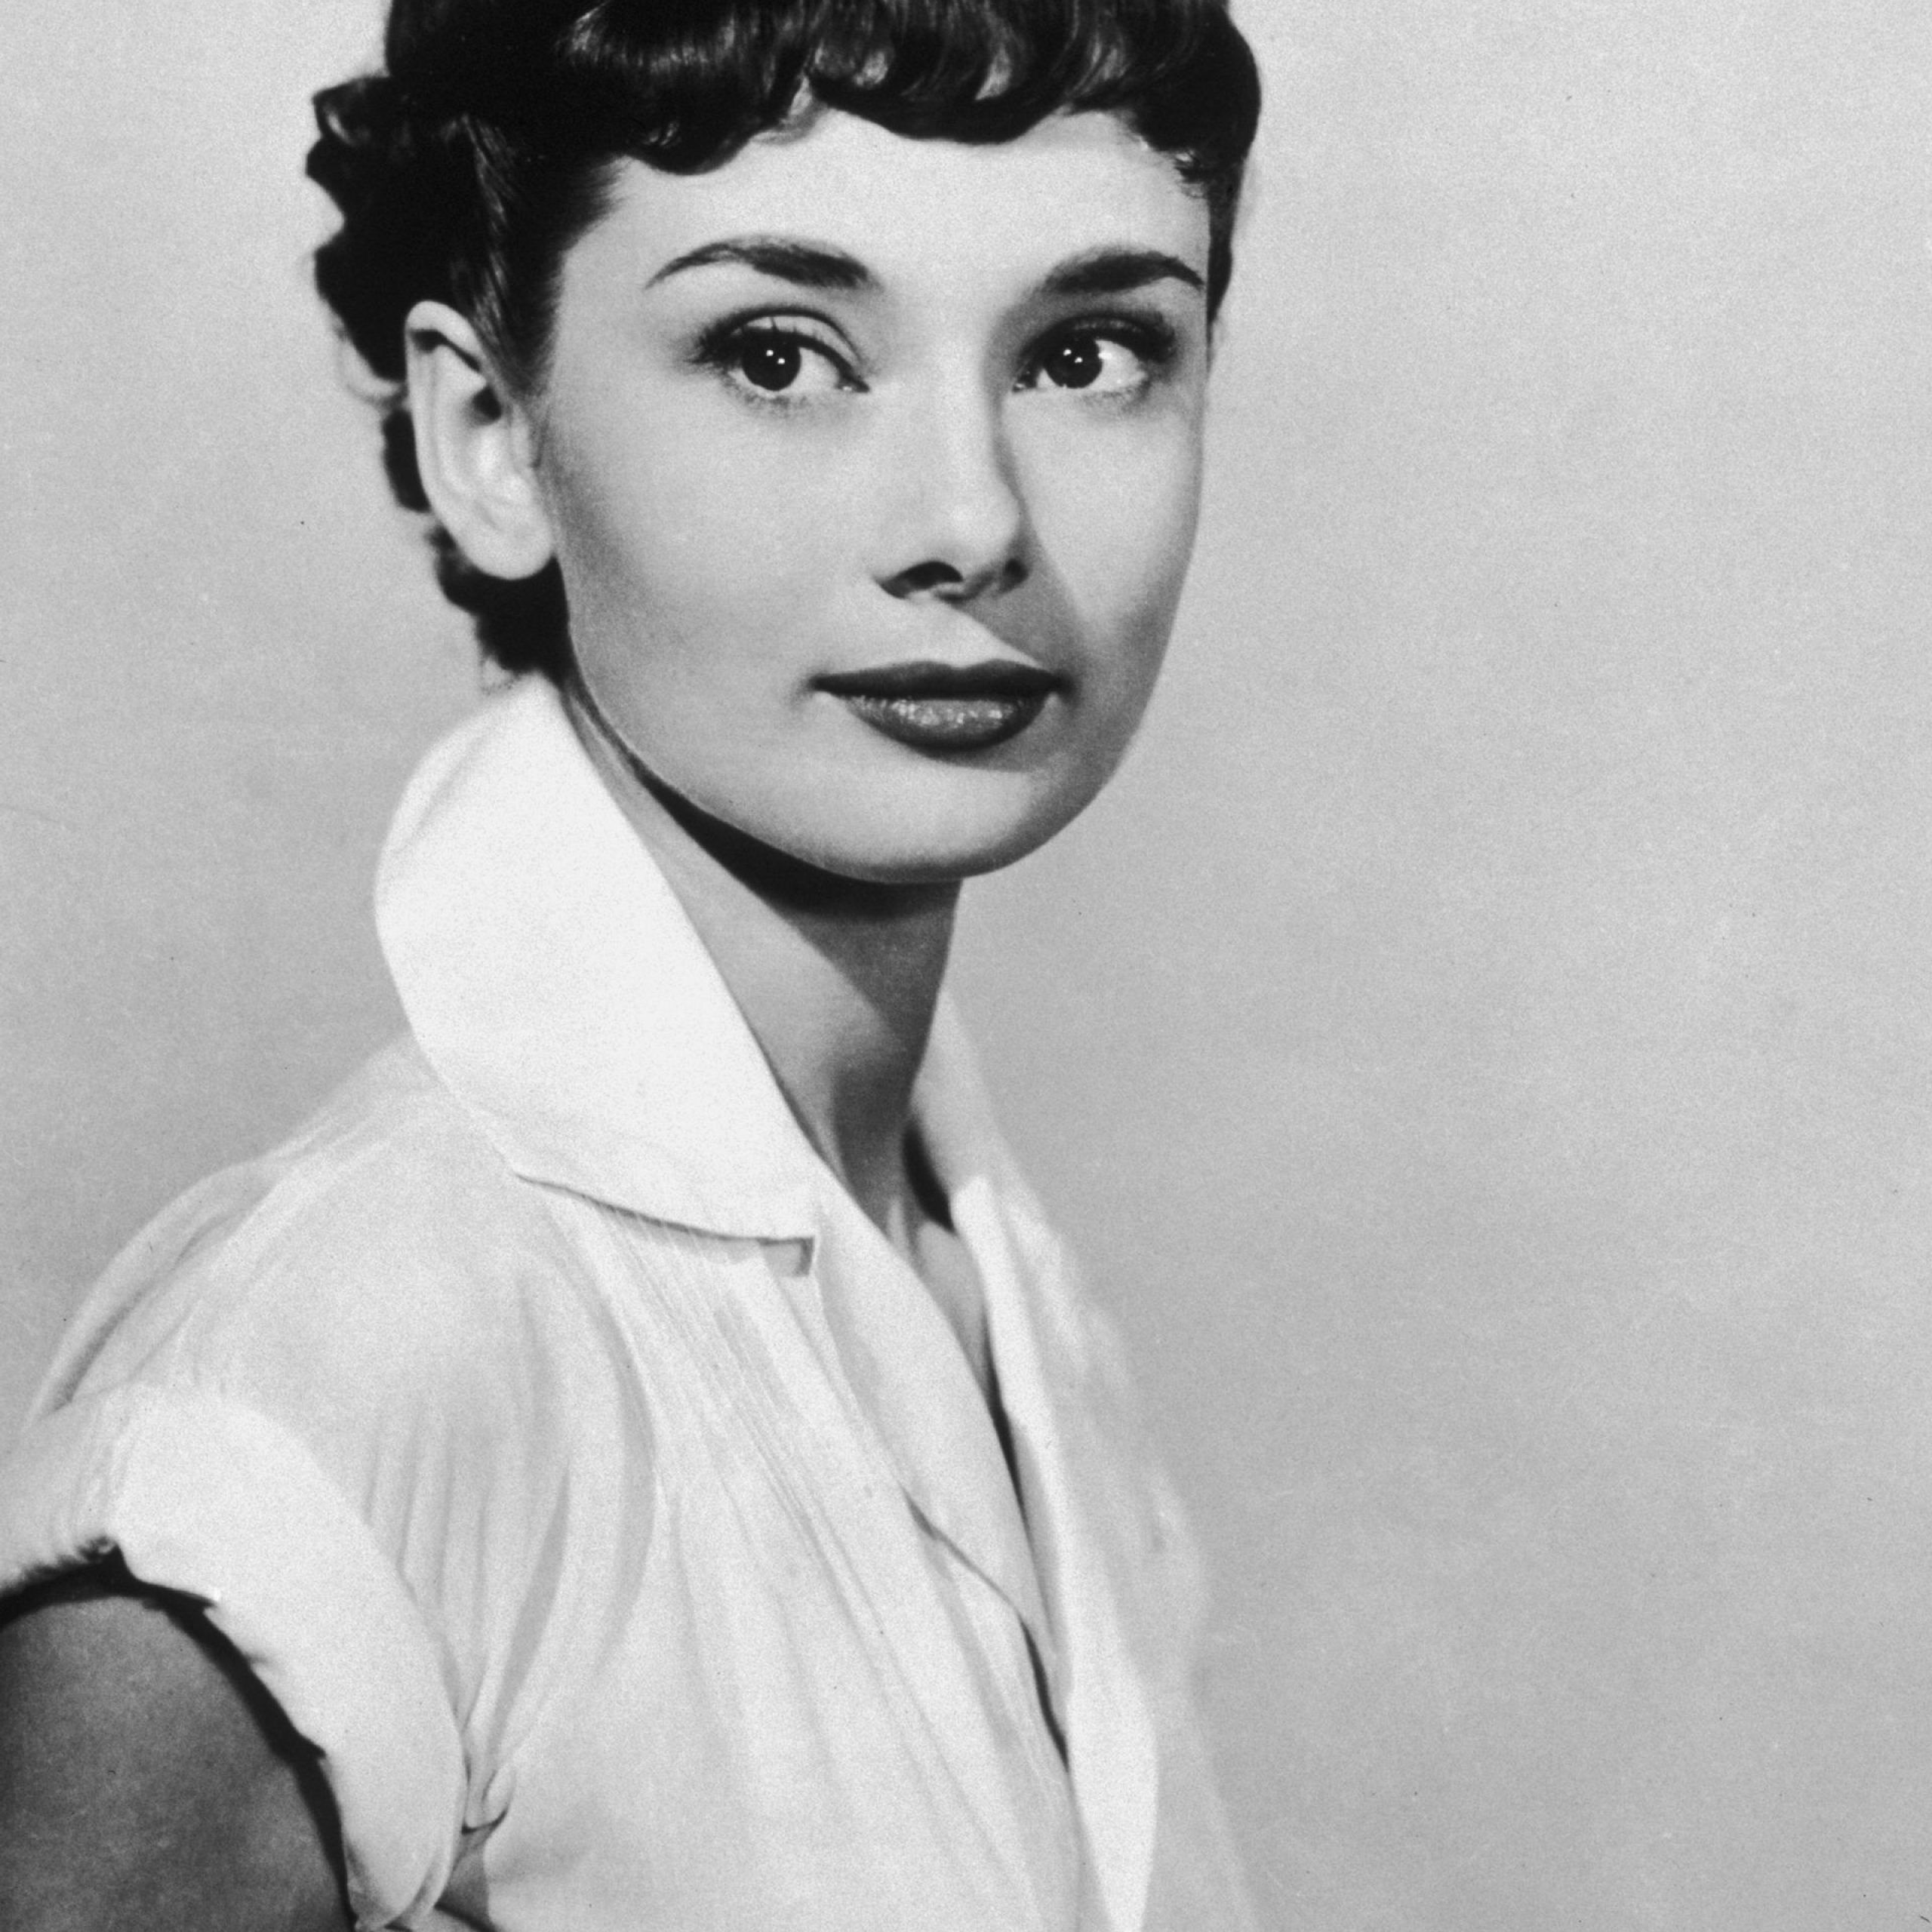 34 Best Pixie Cuts Of All Time – Iconic Pixie Haircut Ideas In Latest Audrey Hepburn Inspired Pixie Haircuts (View 1 of 20)